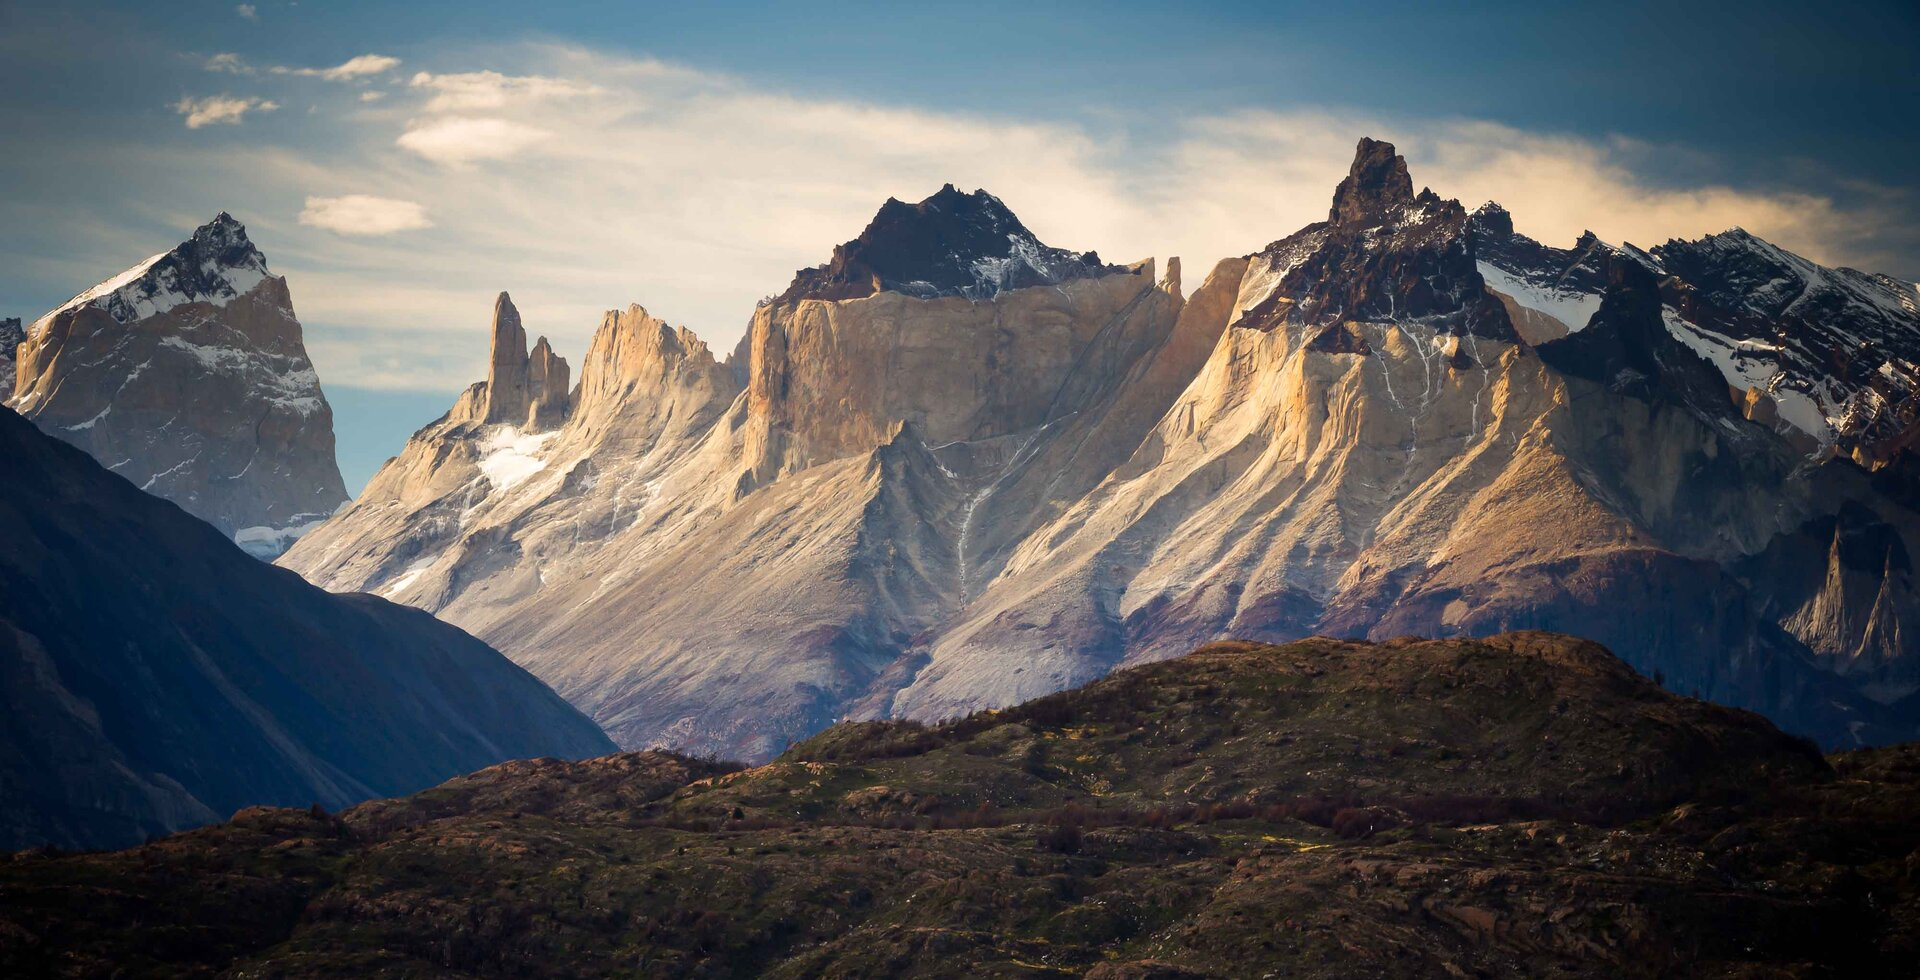 The spires of Torres del Paine National Park in Patagonia, Chile look down on Lago Grey, a glacially fed lake on the west side of the park. Grey Glacier, which is nearly four miles wide and 90 feet thick, often calves large icebergs that float into the lake.